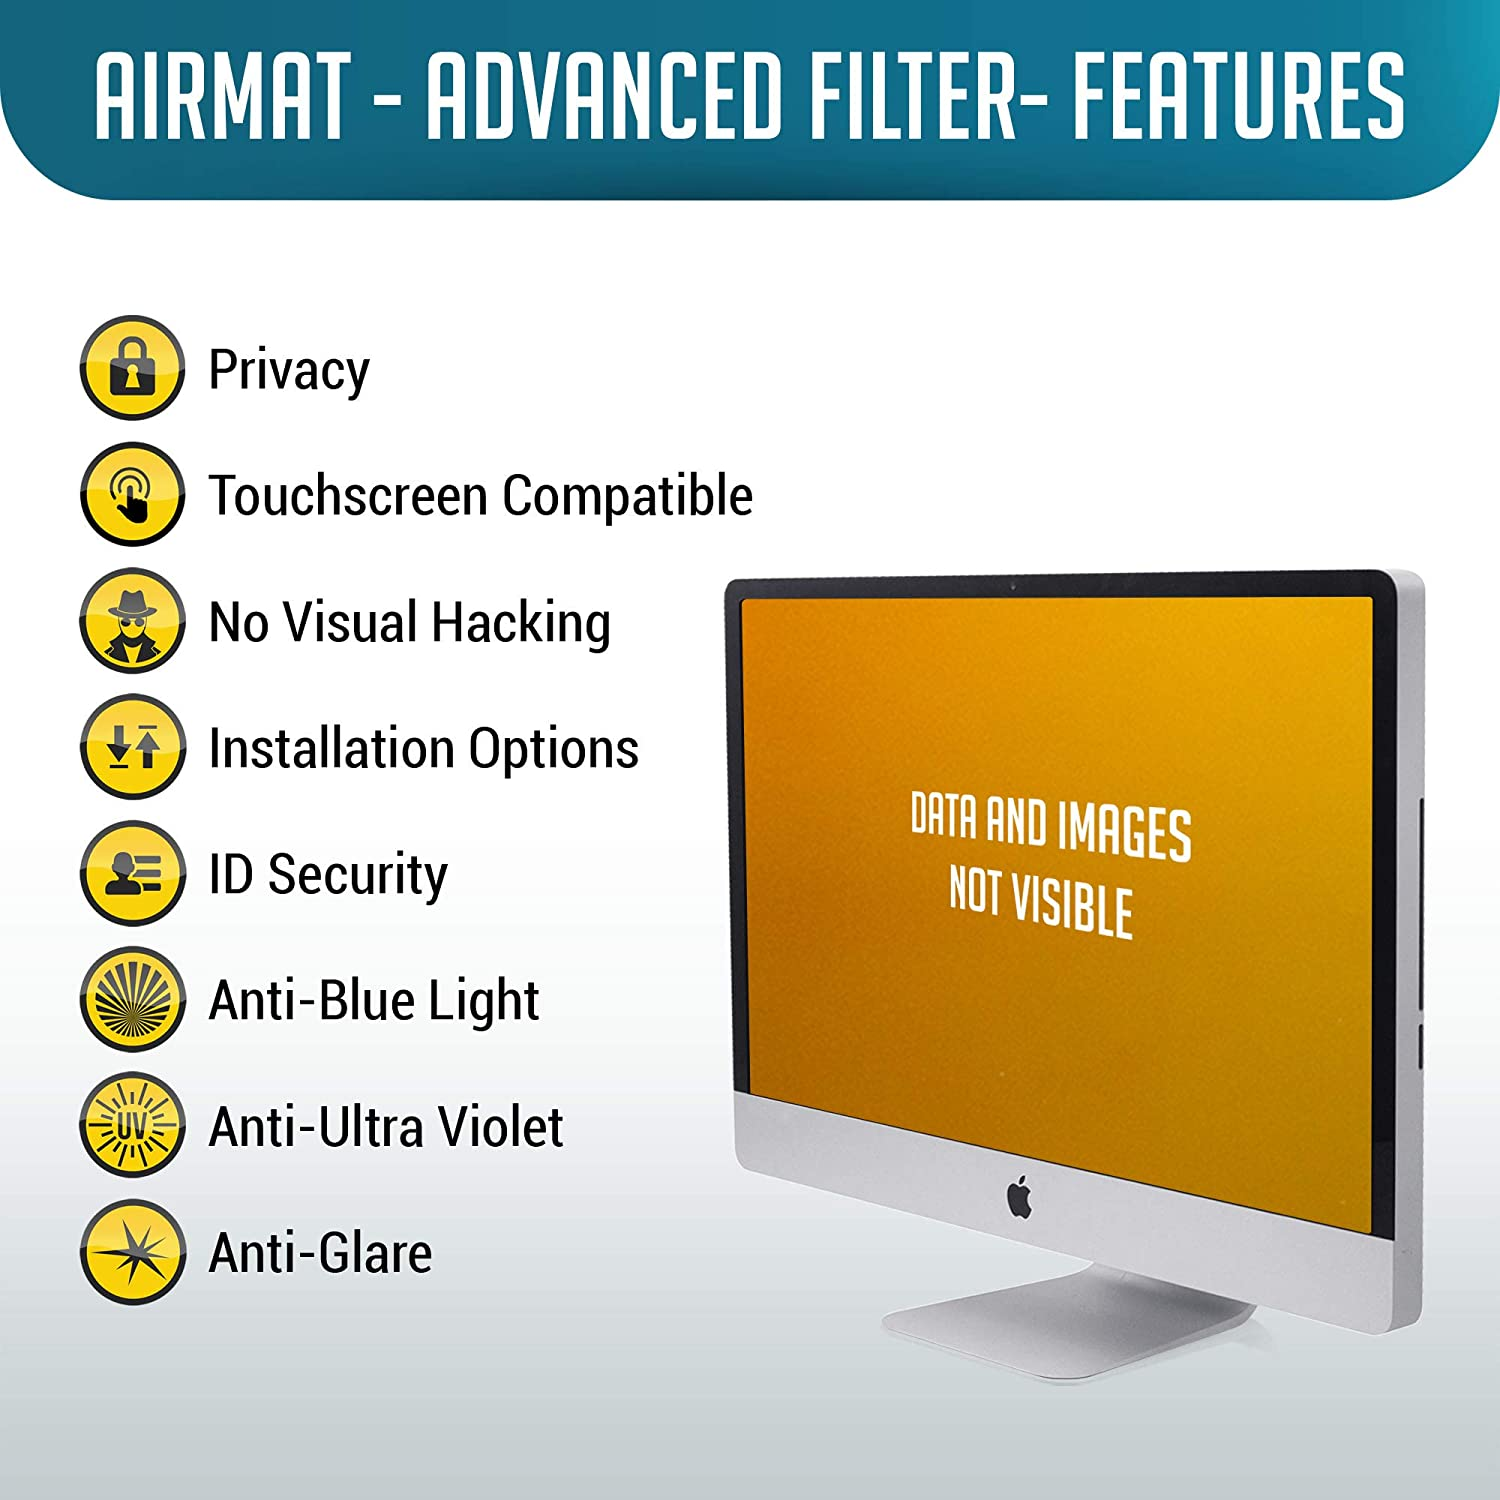 19 inch Computer Privacy Screen Filter for Standard Display Monitors by AirMat Premium Anti Glare Protection for Data Confidentiality